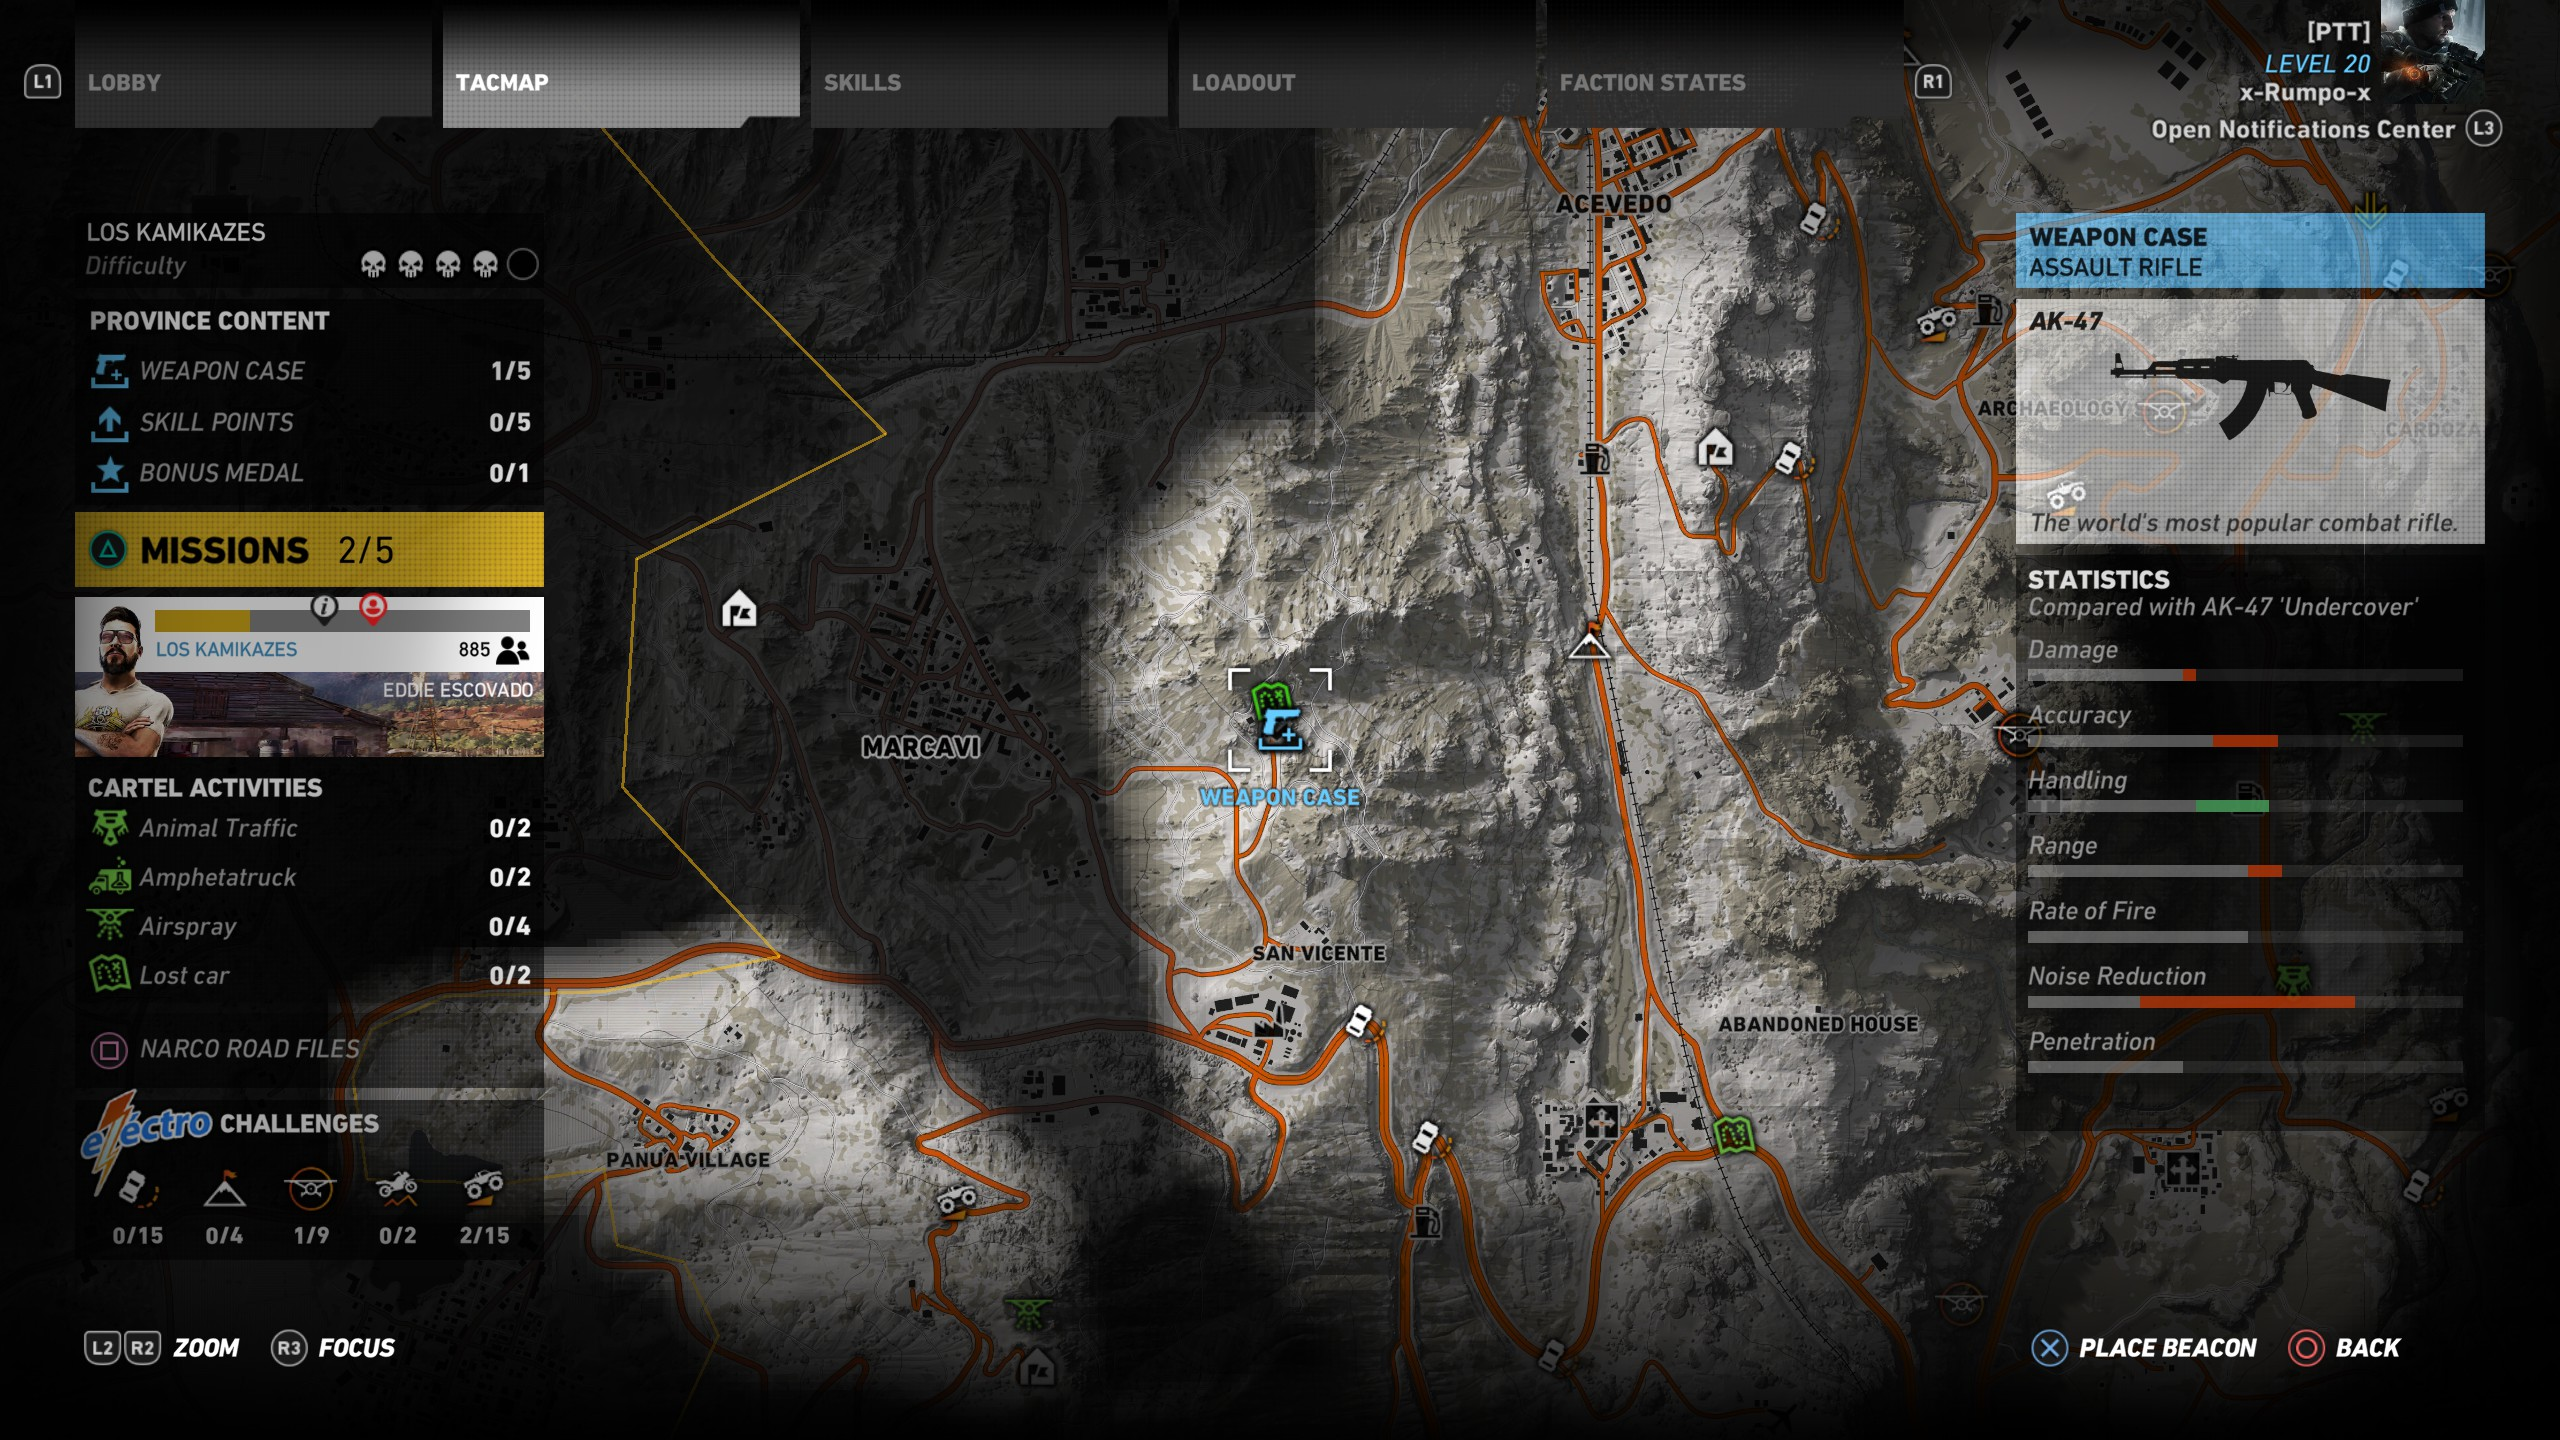 A zoomed out look at the location for the AK 47 in Narco Road of Ghost Recon Wildlands.